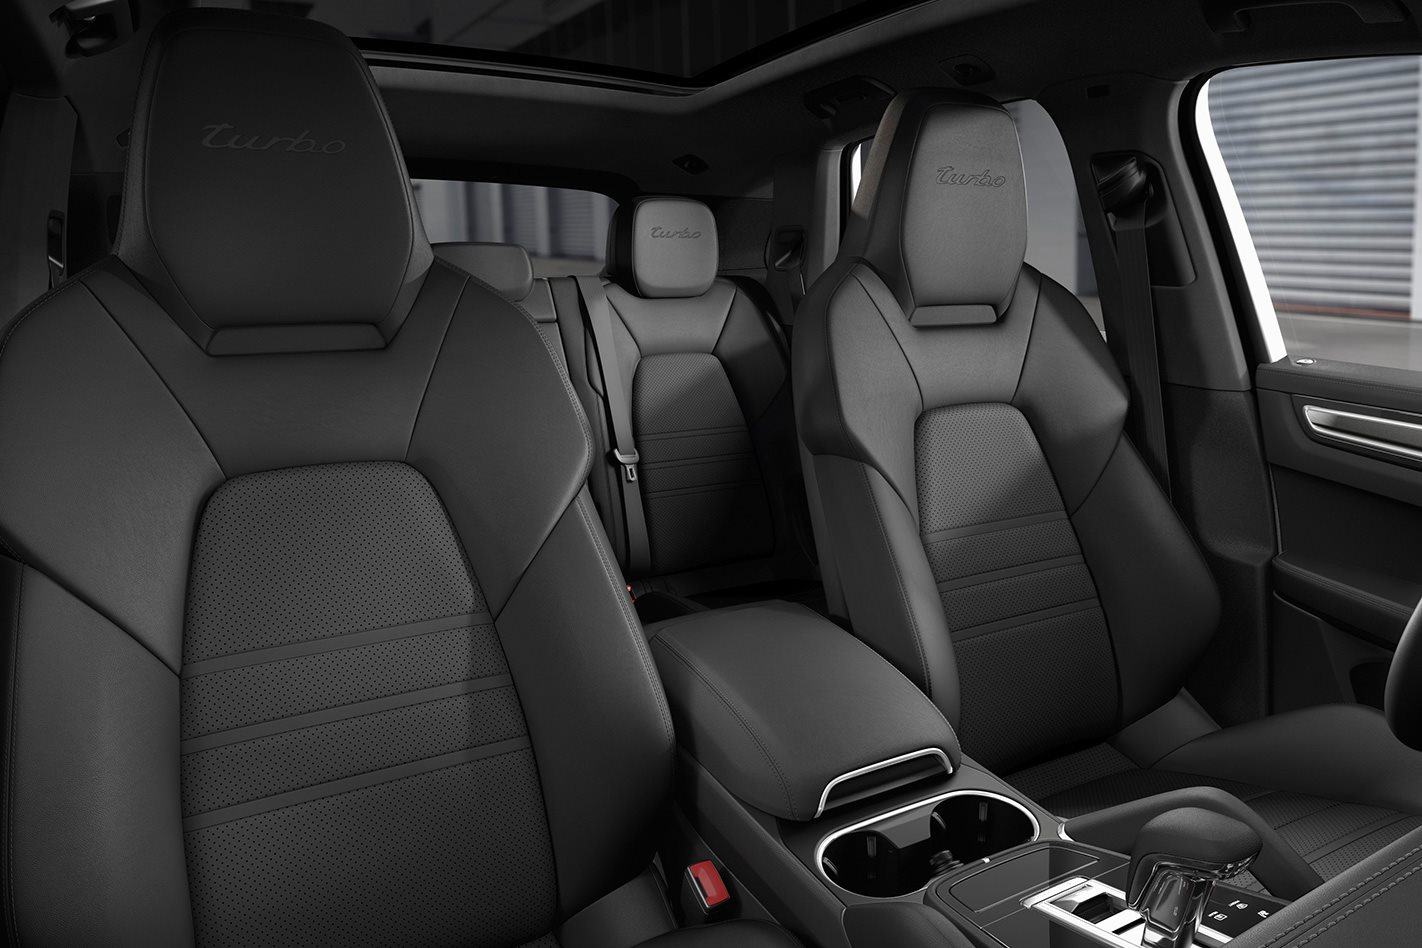 2018 Porsche Cayenne Turbo seats